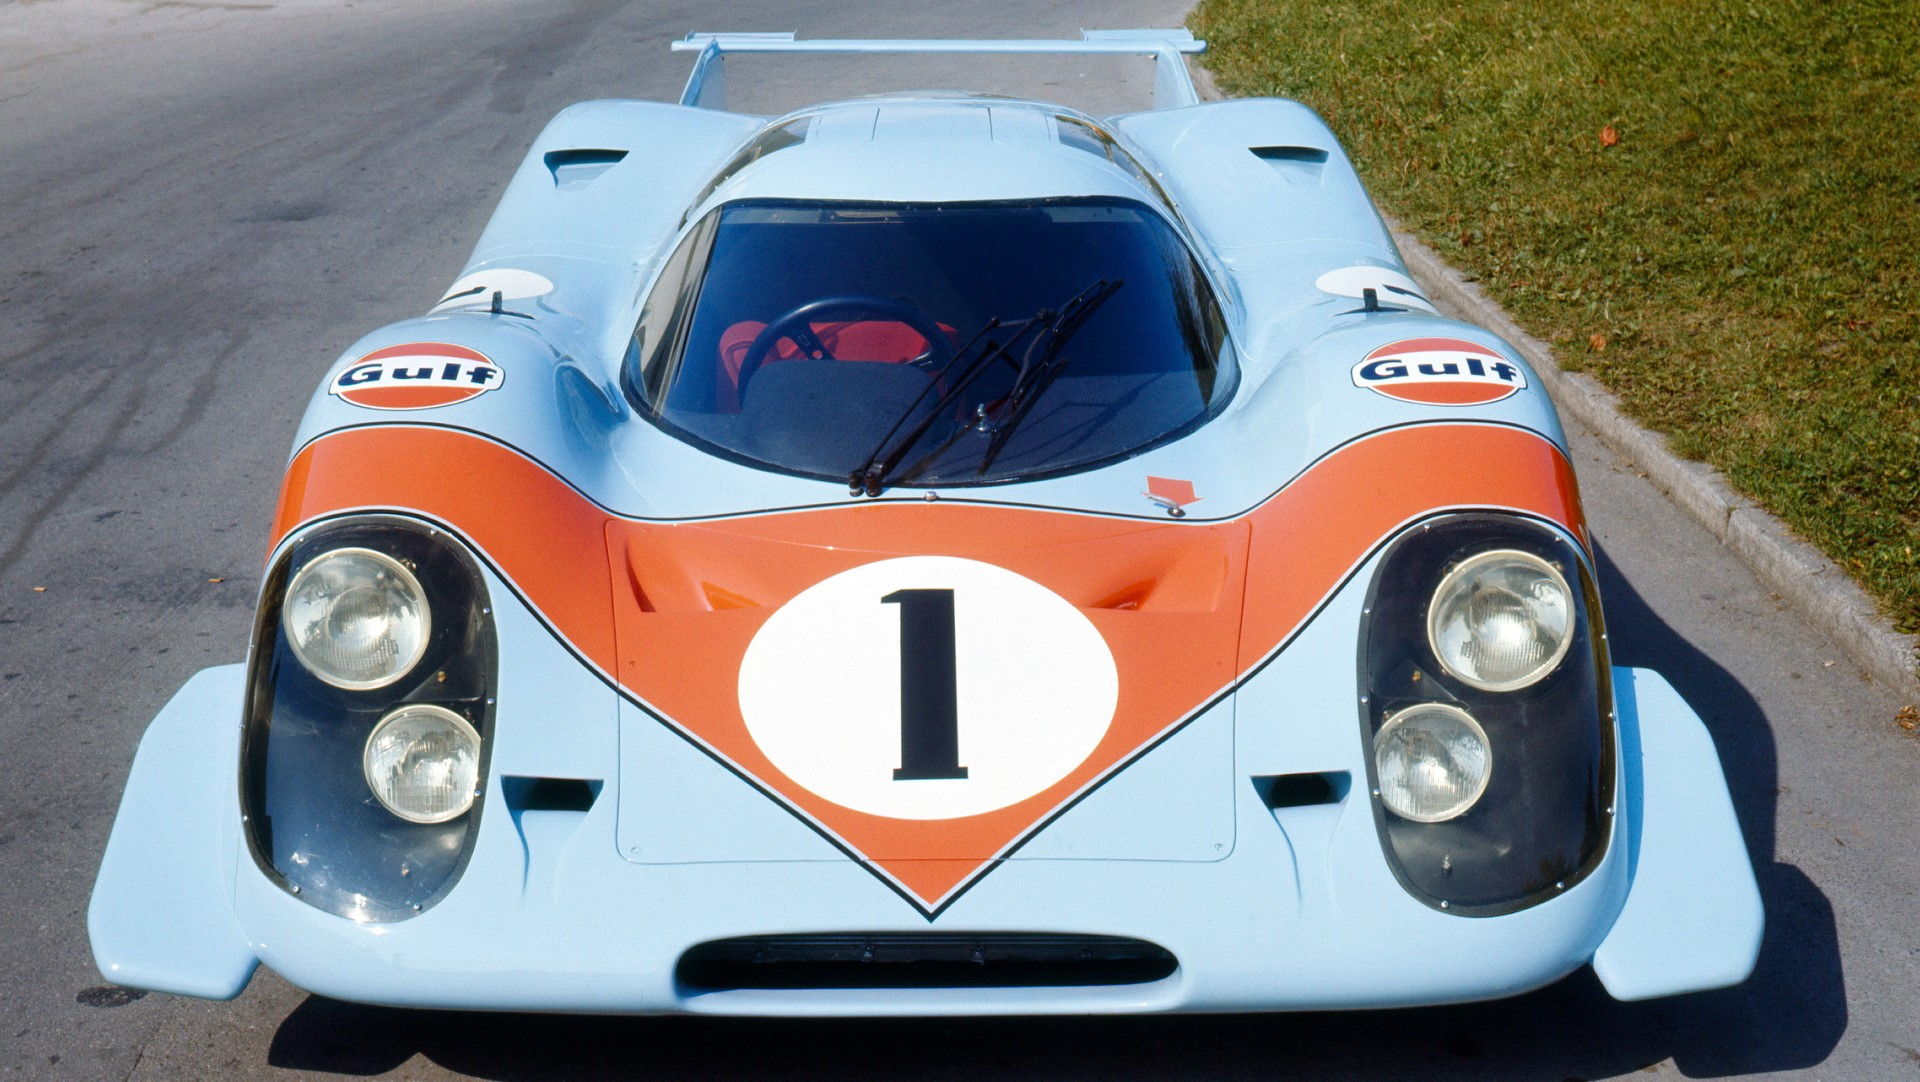 1593613_917_in_the_brand_colours_of_us_oil_company_and_sponsor_gulf_light_blue_and_orange_porsche_ag